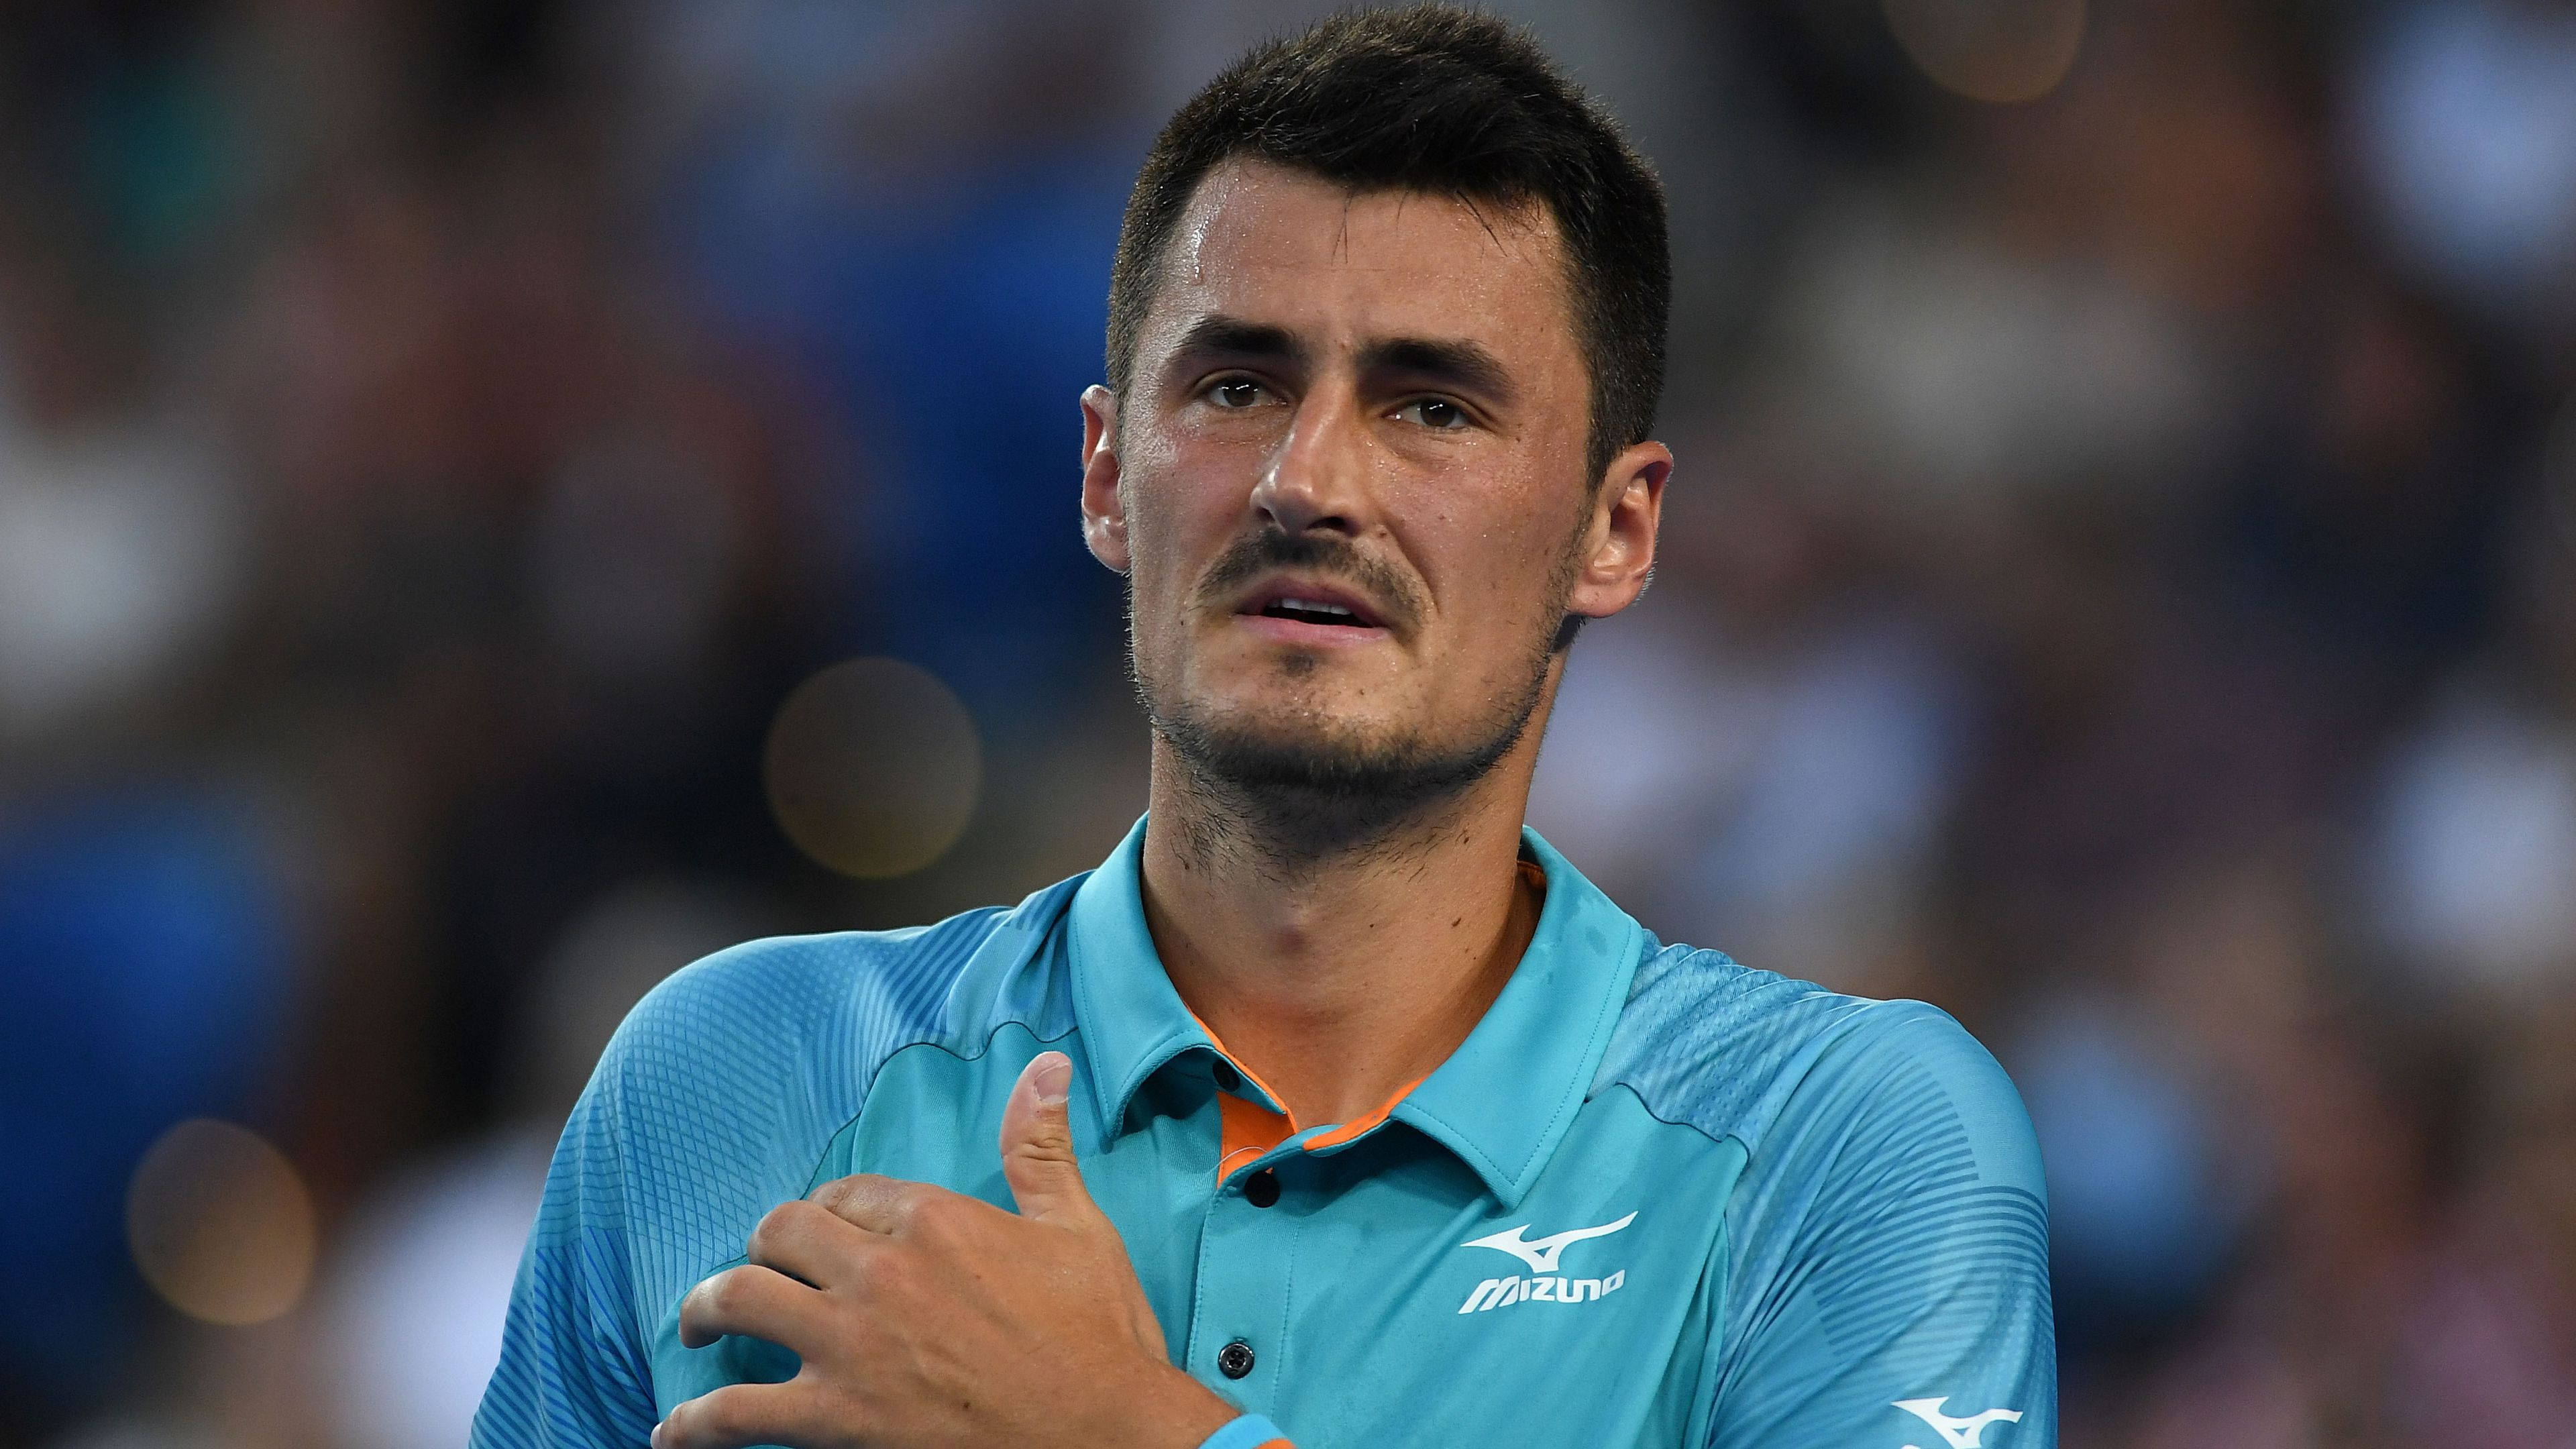 Comment: Why Lleyton Hewitt had every right to respond publicly to Bernard Tomic